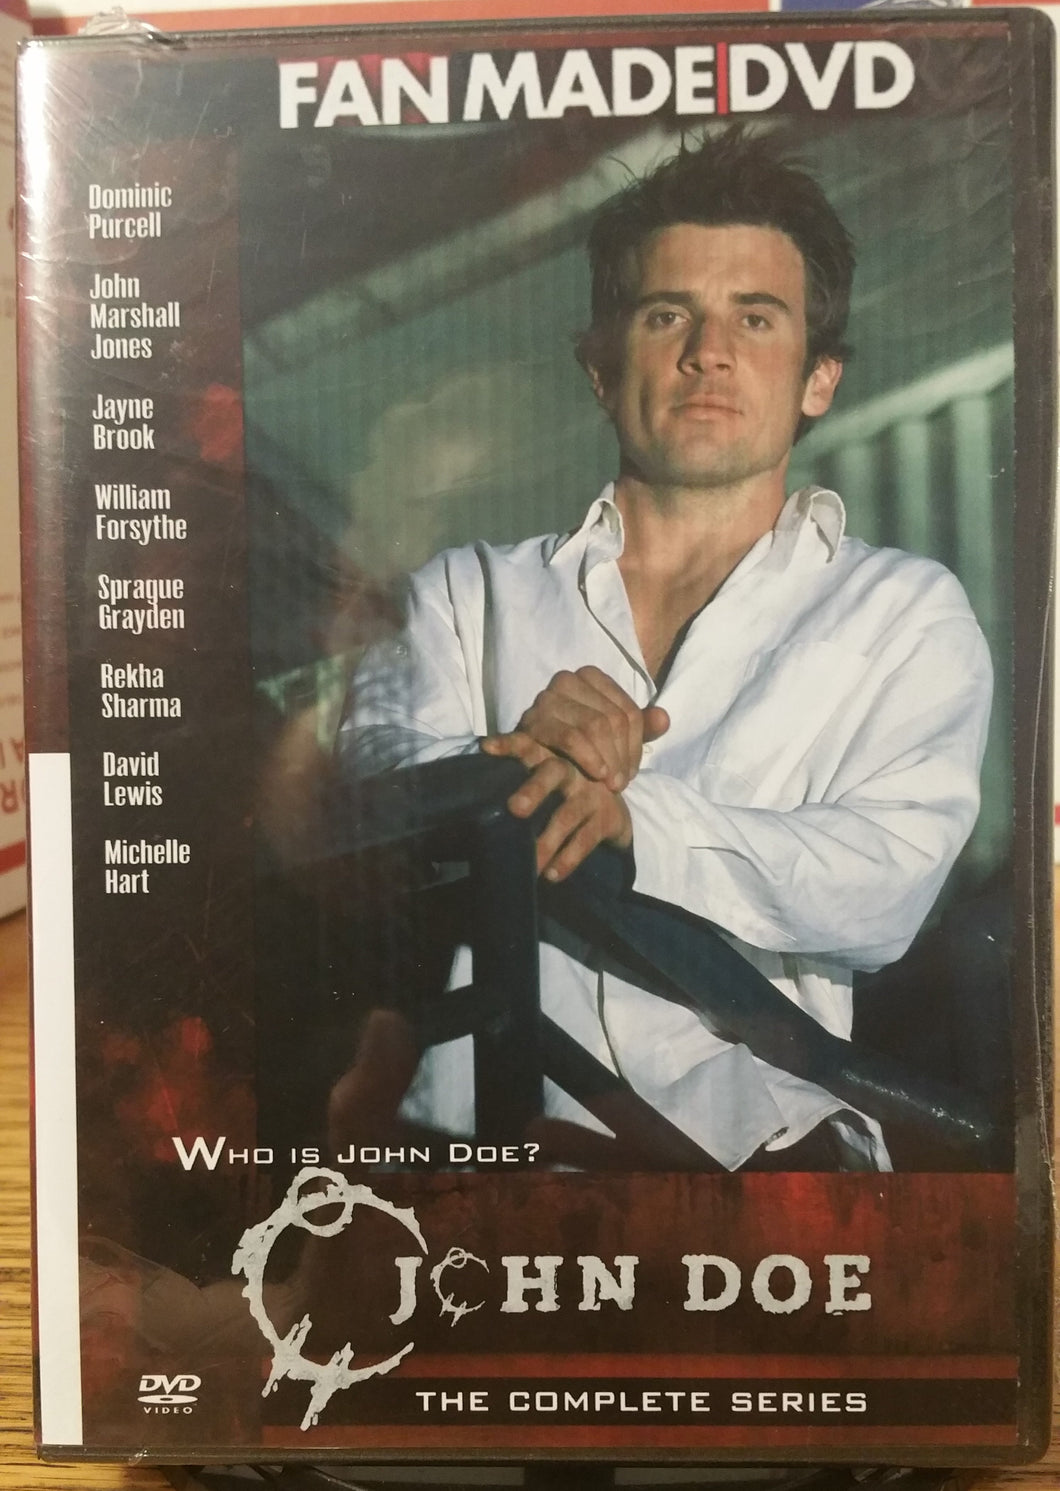 JOHN DOE (2002) THE COMPLETE TV SERIES 21 EPISODES ON 2 DVD'S Dominic Purcell Jayne Brook John